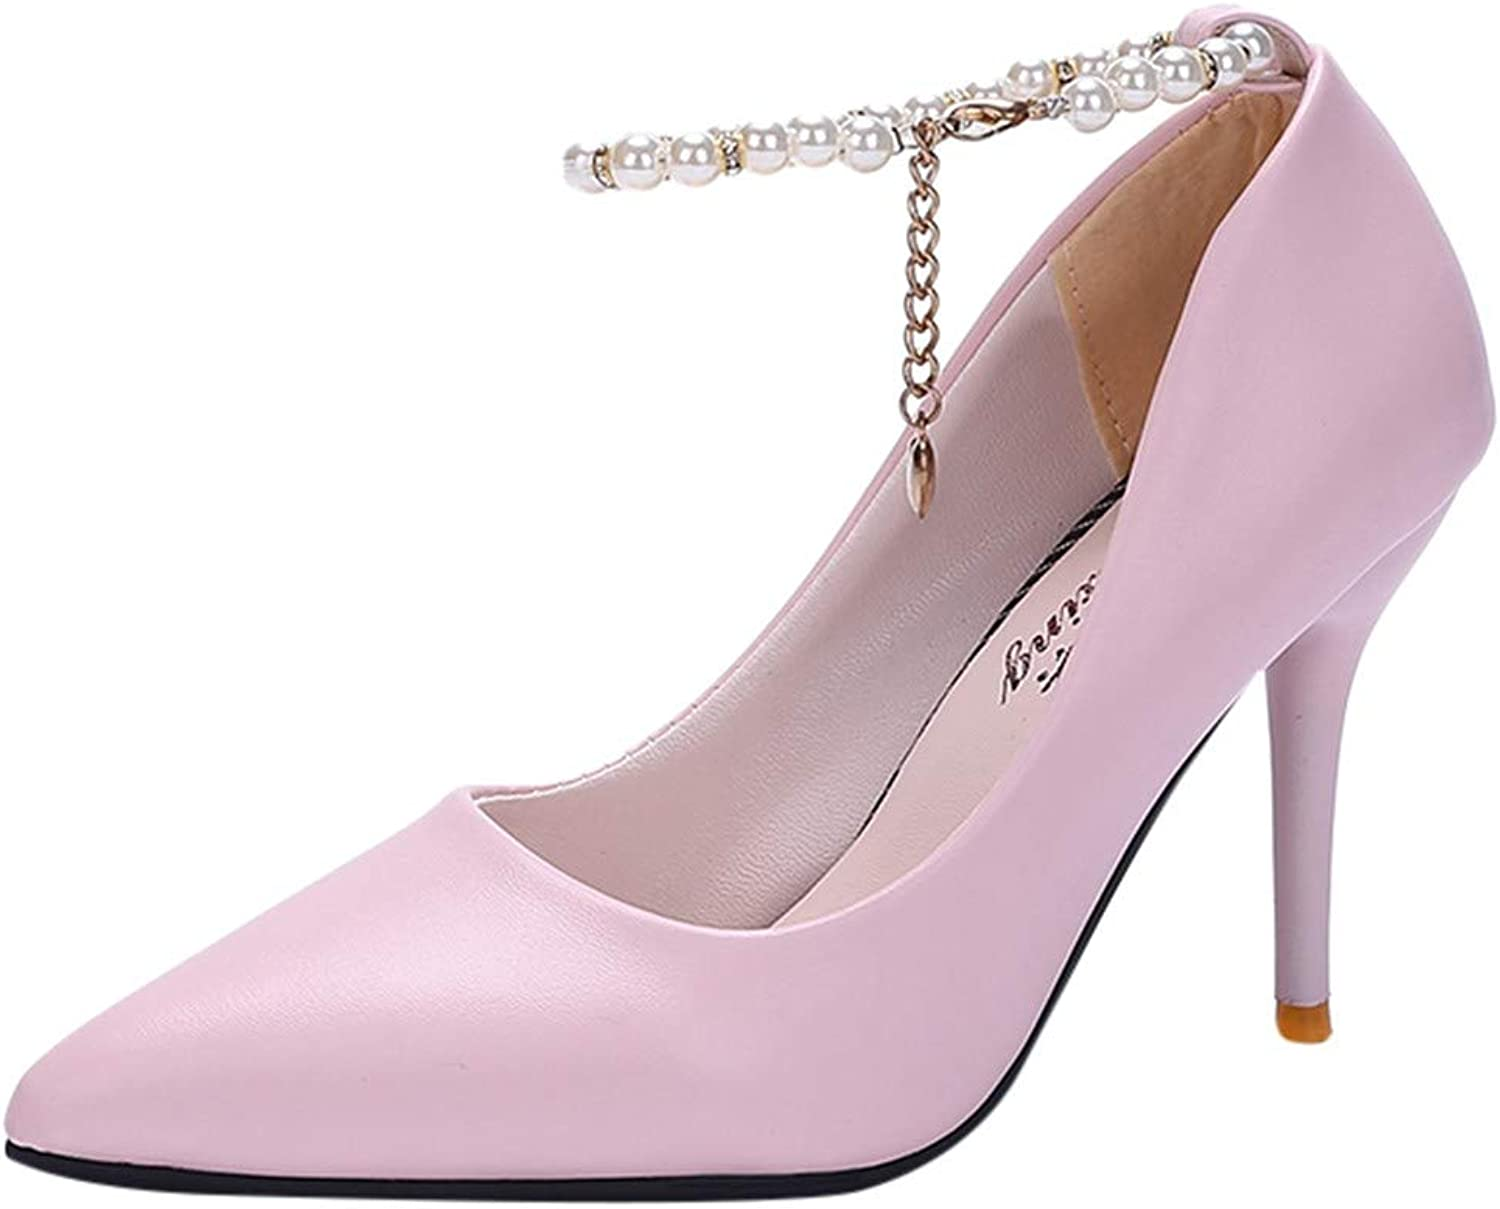 Xinantime Women's Closed Pointed Toe Pumps Stiletto High Heels Office Lady Wedding Party Dress Heeded shoes